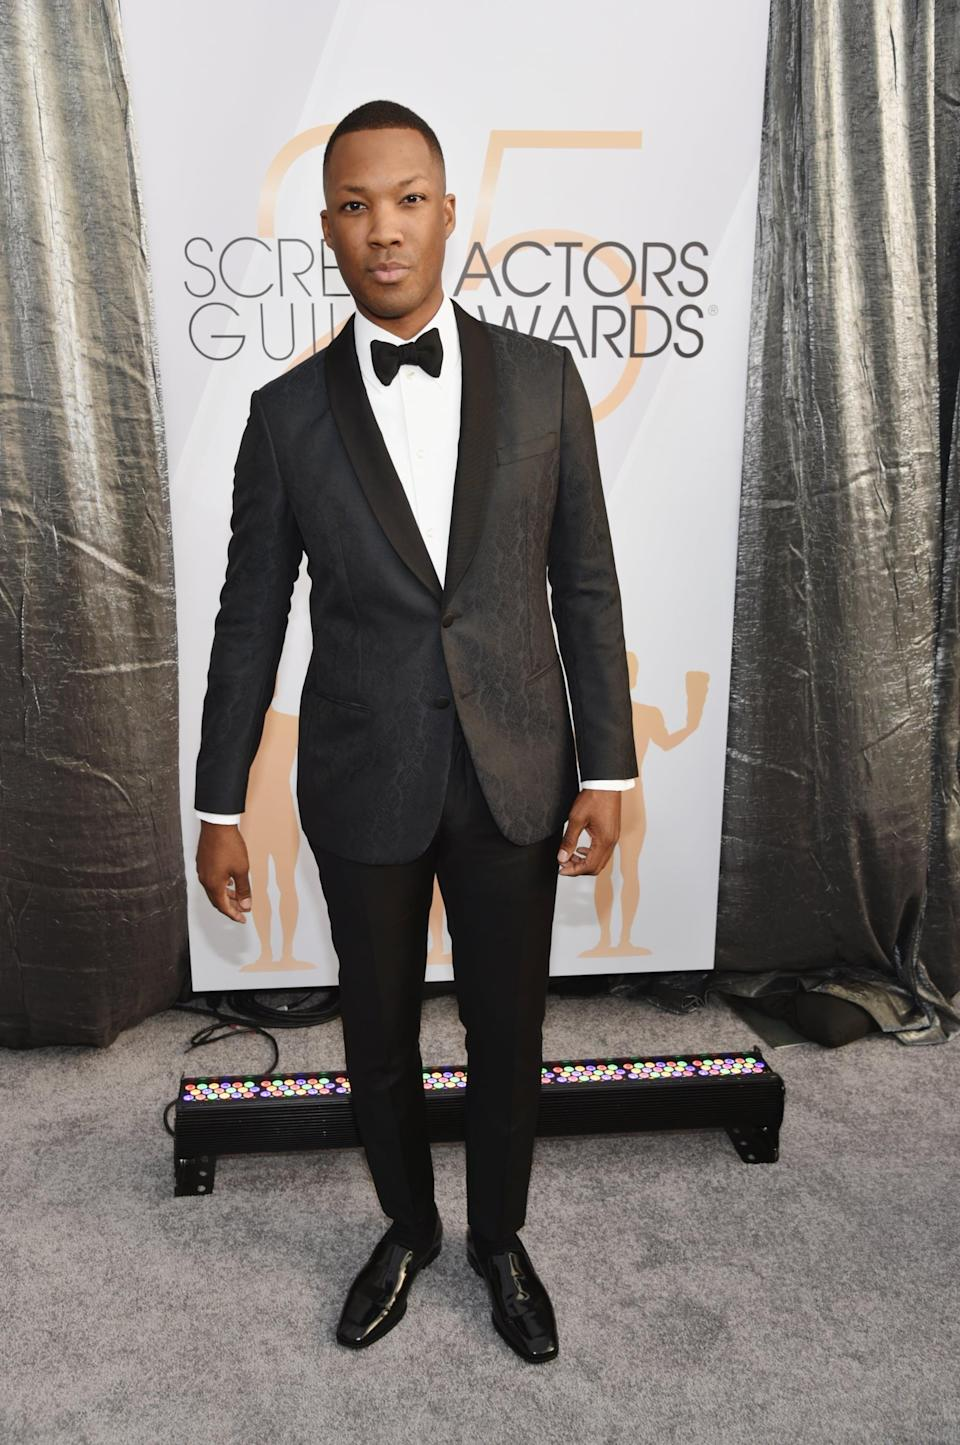 <p>Wearing a tux with a bow tie and Jimmy Choo shoes.</p>